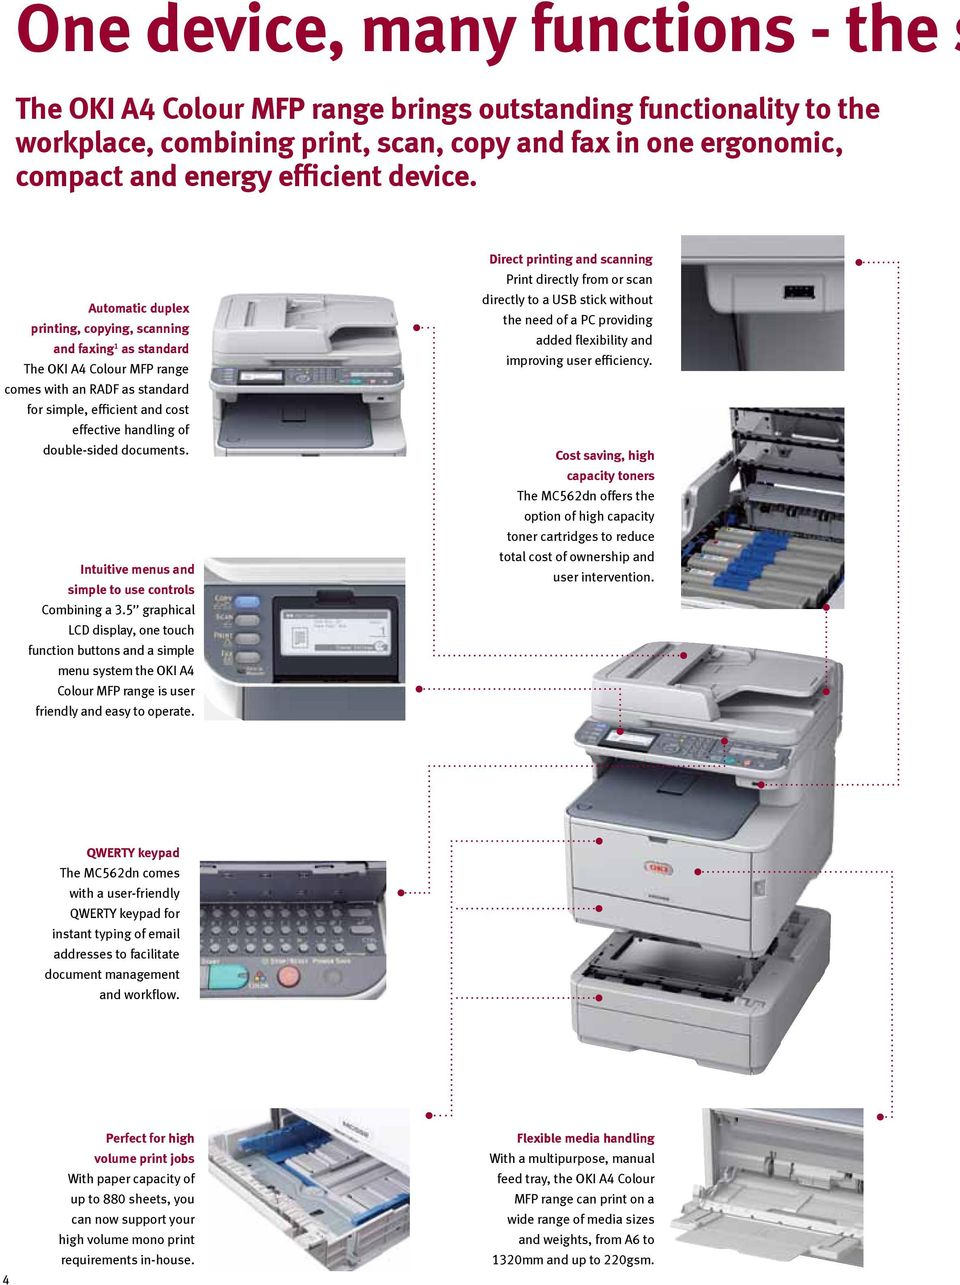 Automatic duplex printing, copying, scanning and faxing 1 as standard The OKI A4 Colour MFP range comes with an RADF as standard for simple, efficient and cost effective handling of double-sided